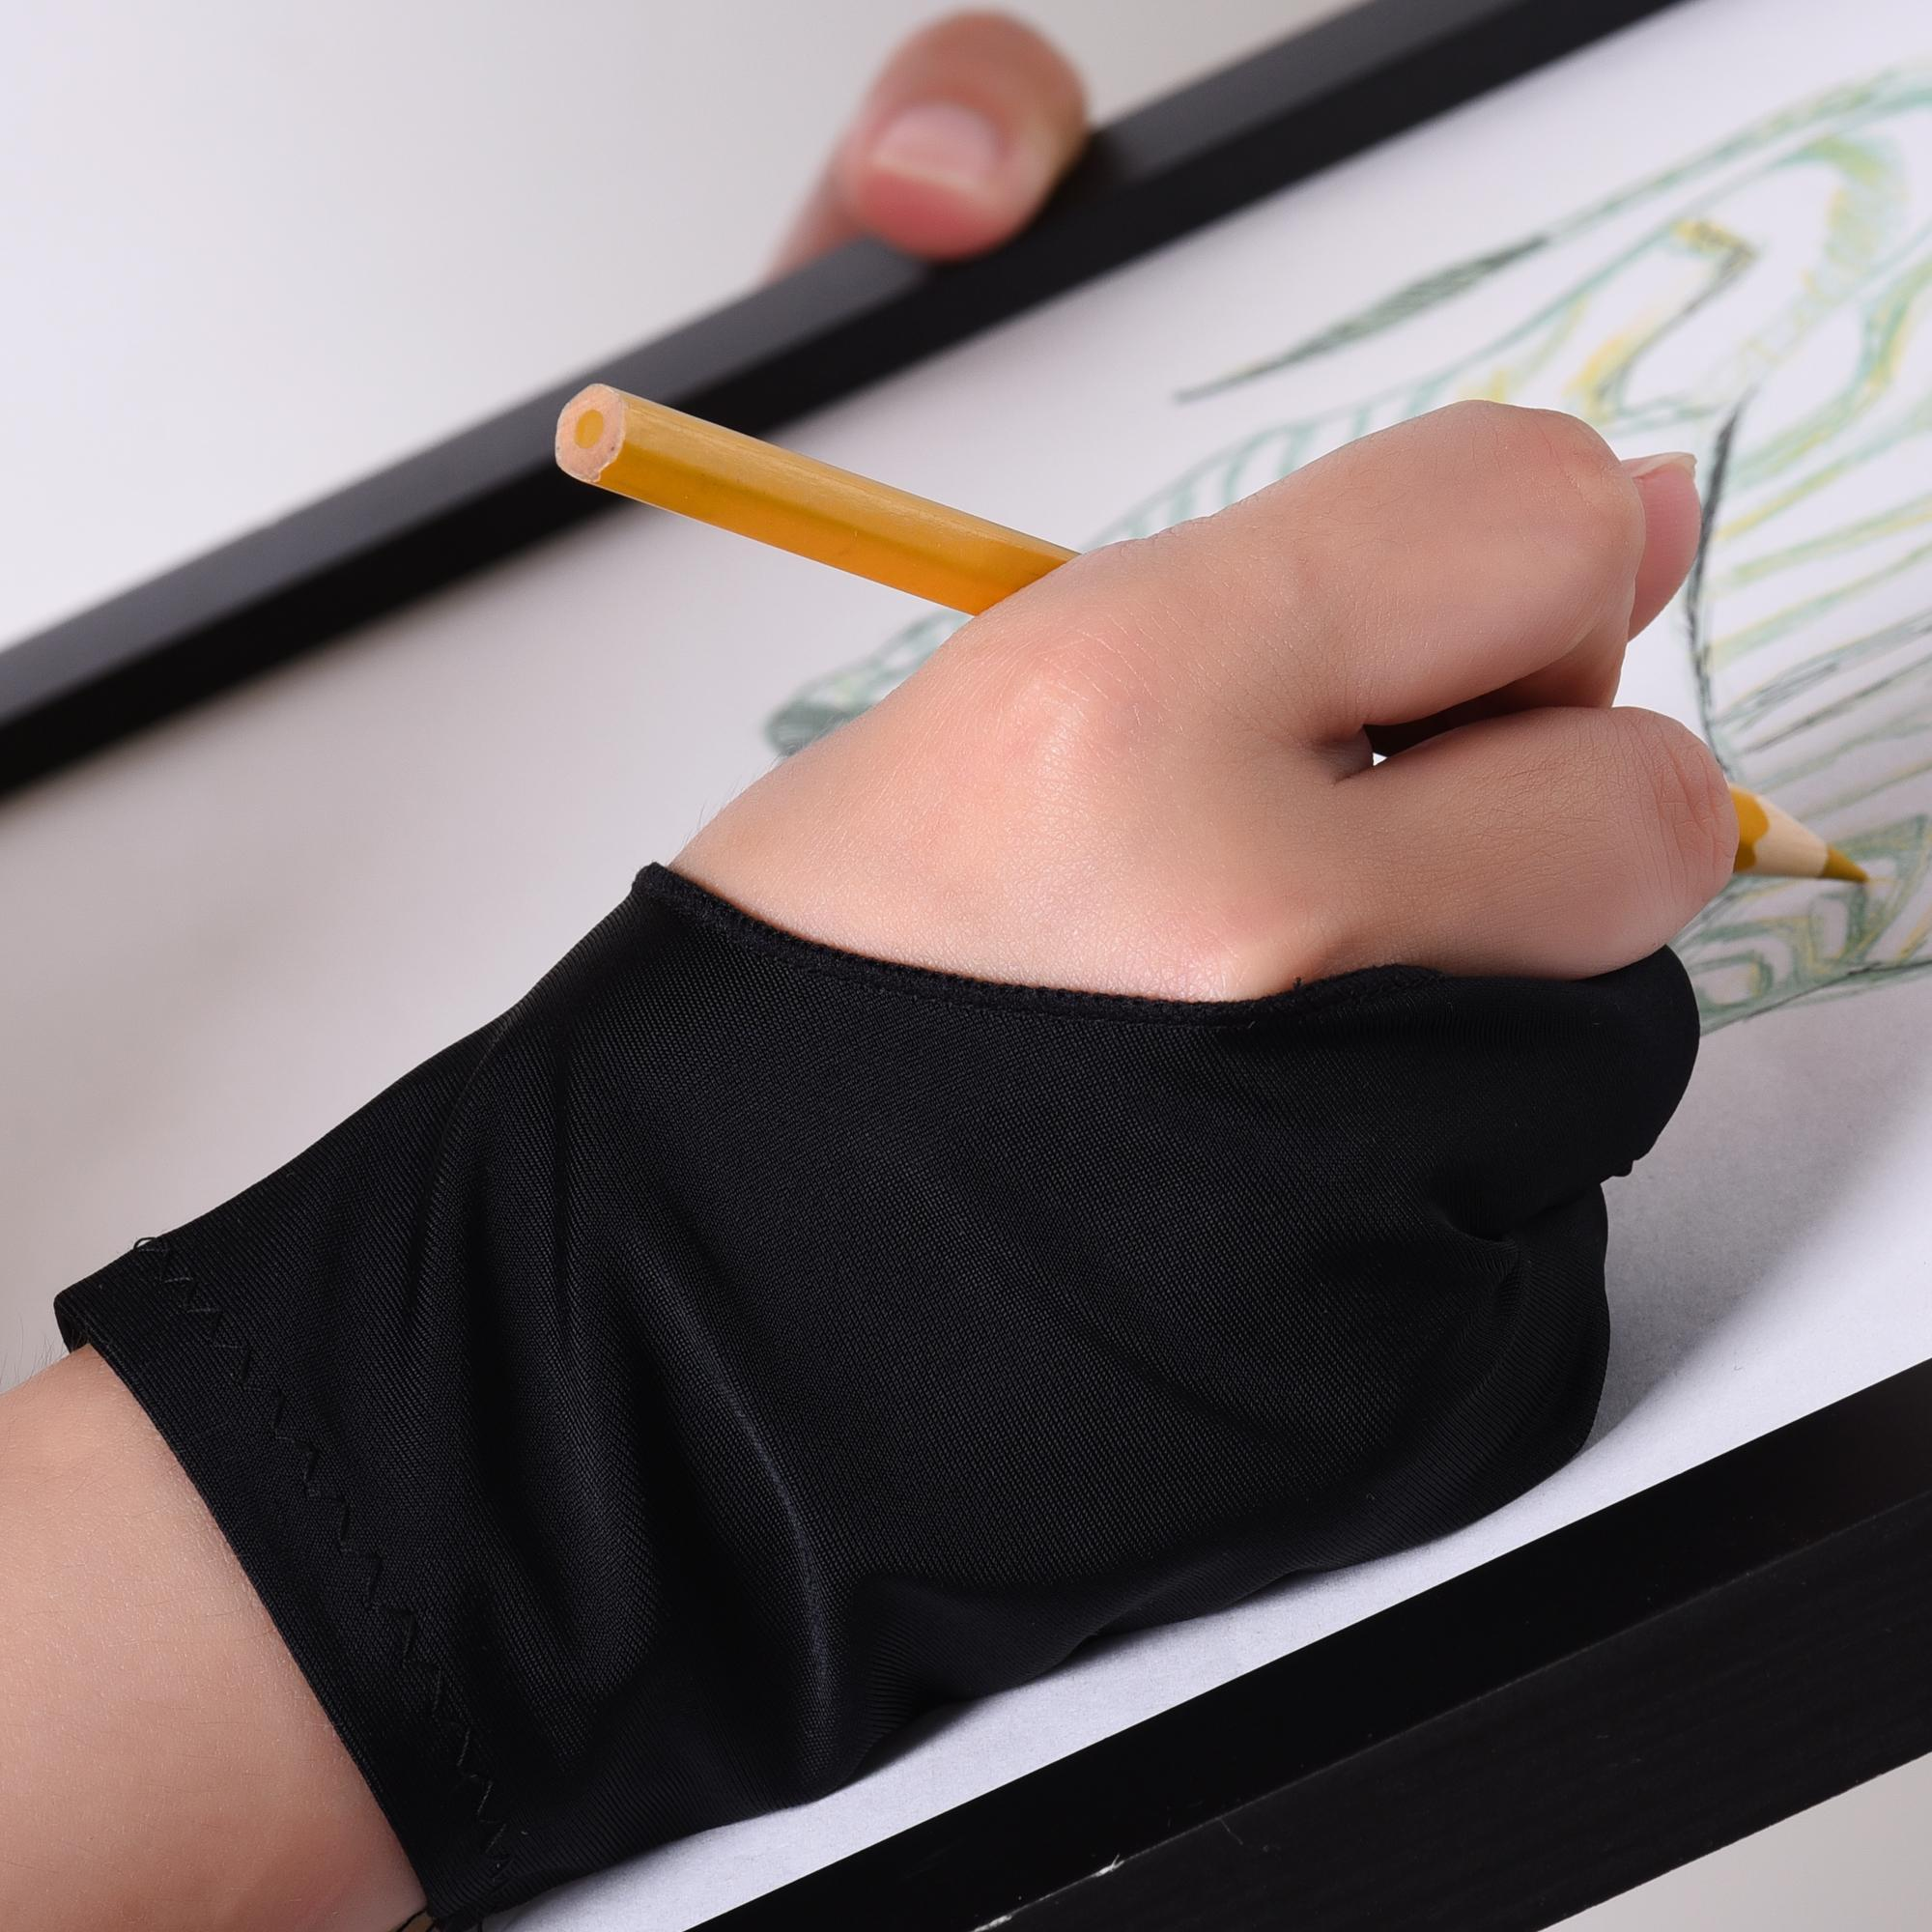 2019 04 Artist Gloves With Two Fingers For Tablet Drawing Light Box